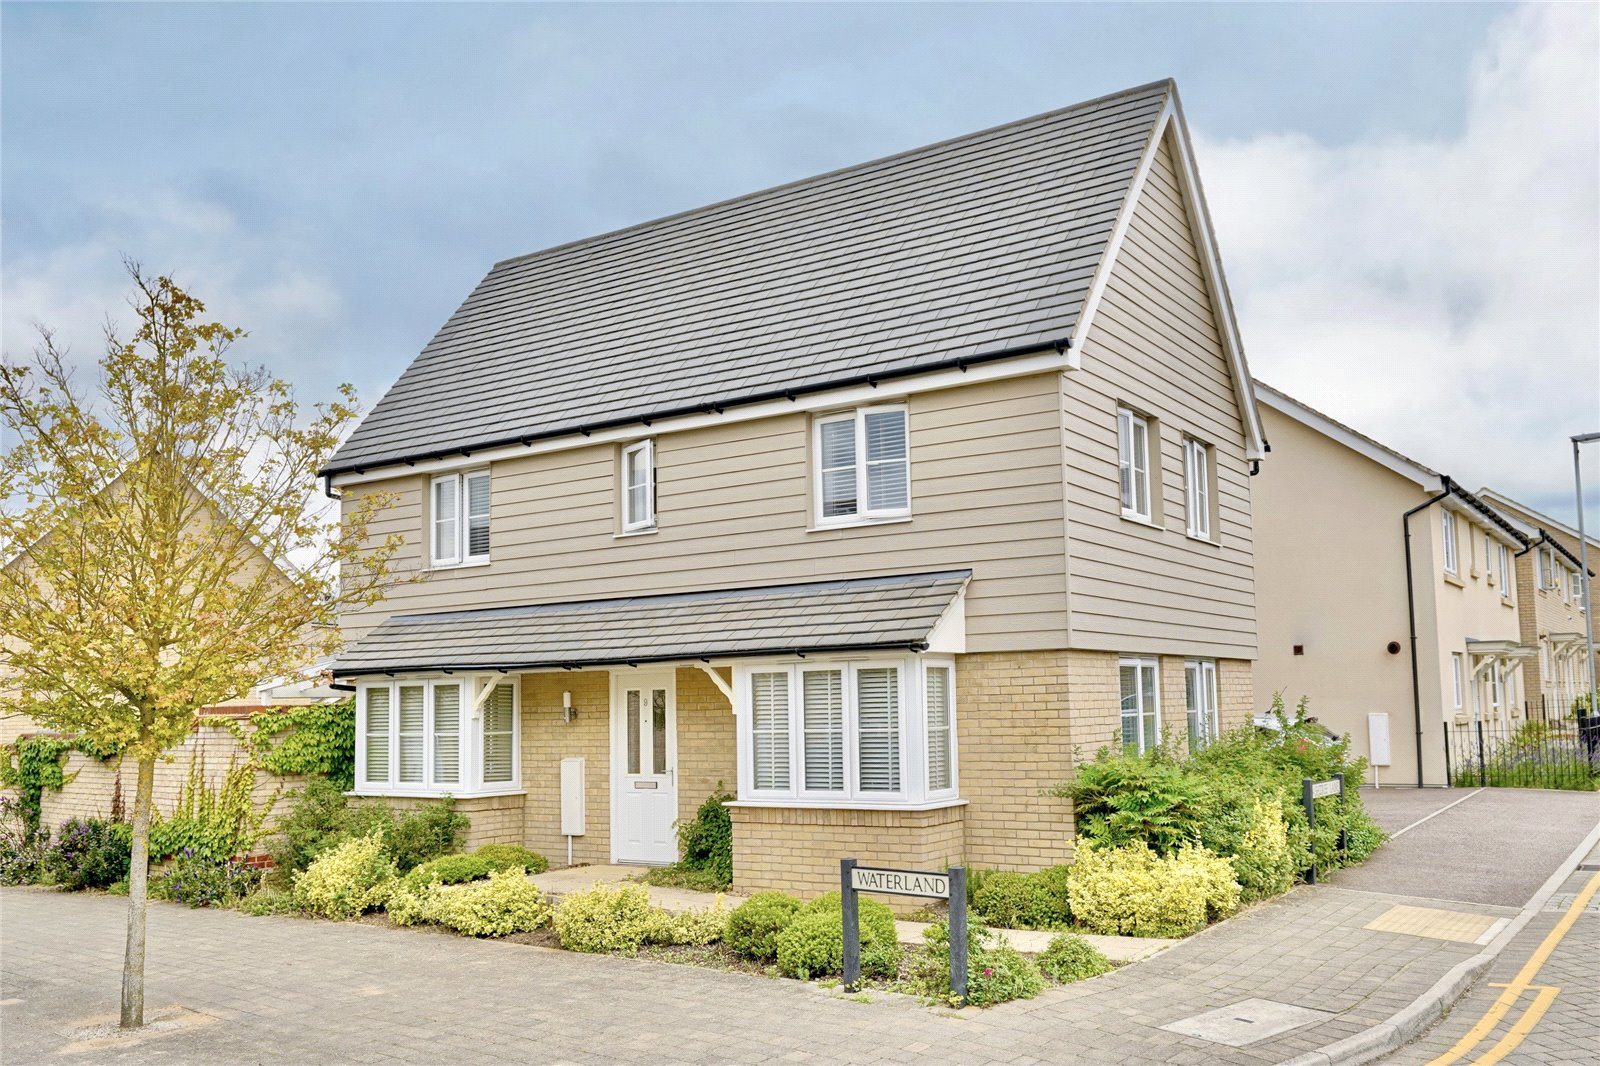 3 bed house for sale in Waterland, St. Neots, PE19